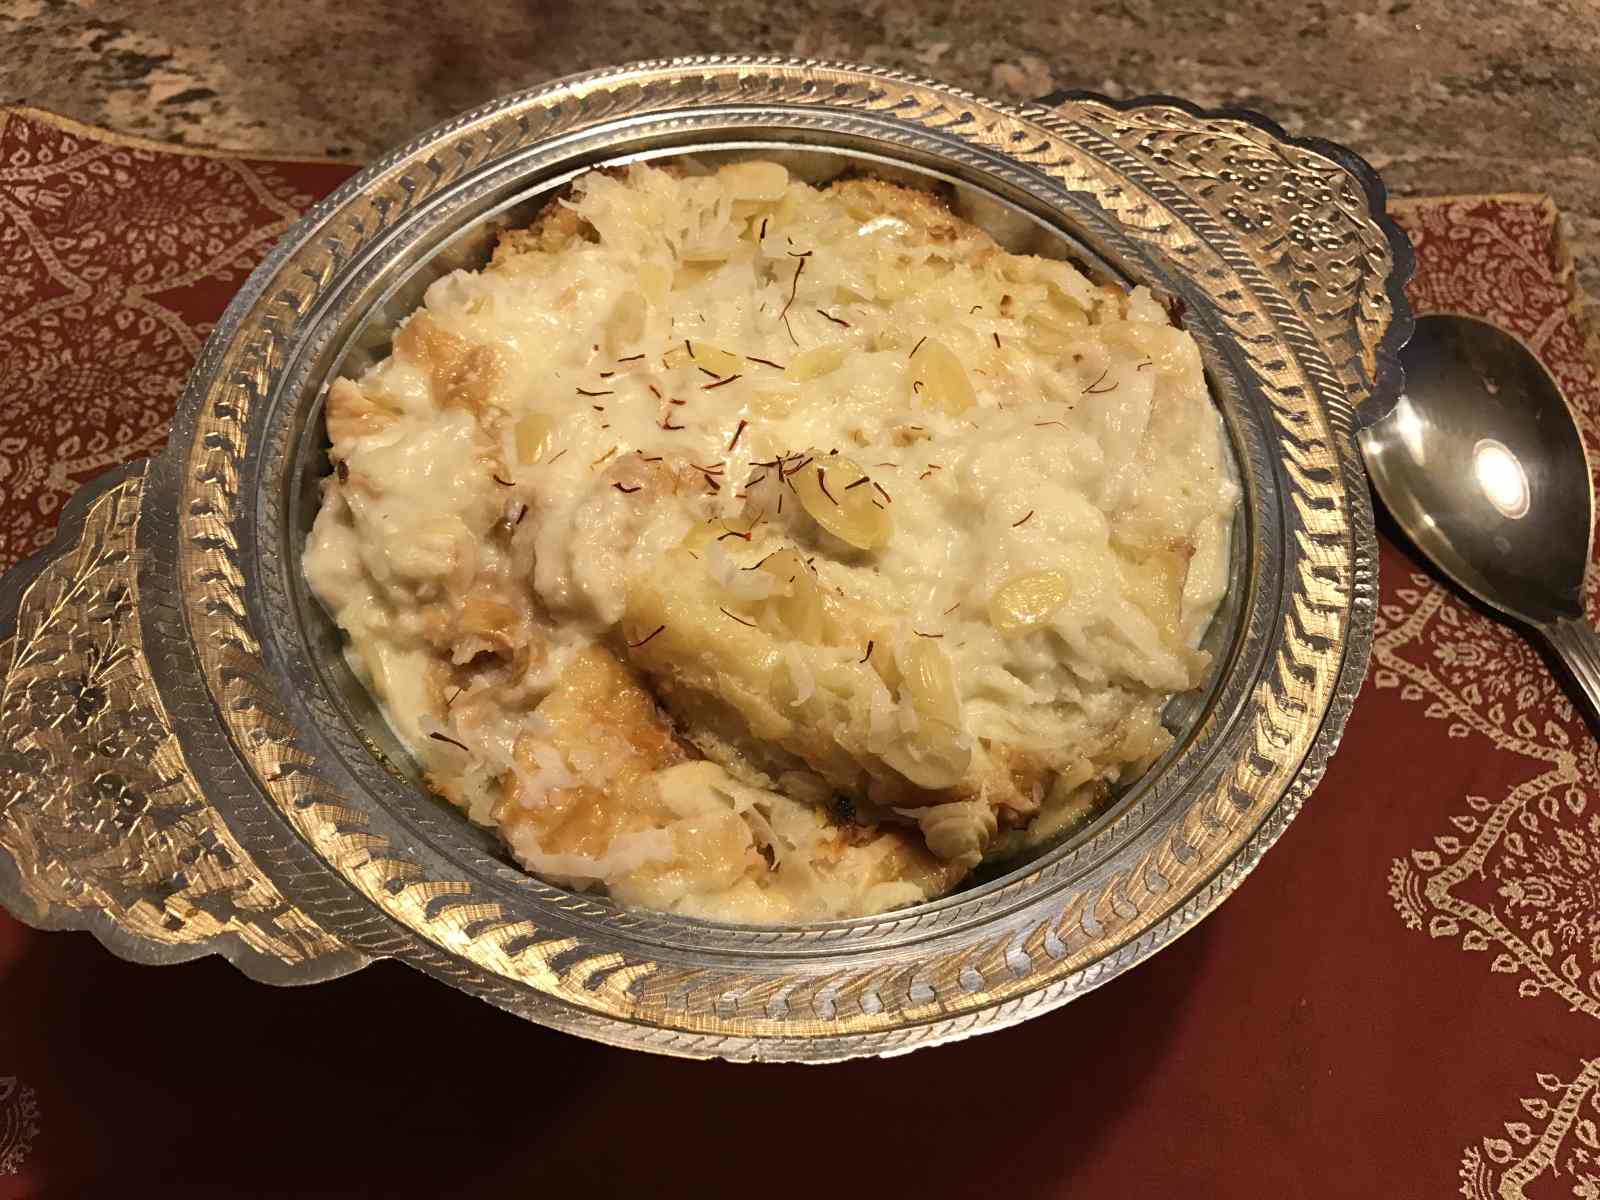 Umm ali recipe egyptian dessert recipe with puff pastry by umm ali recipe egyptian dessert recipe with puff pastry forumfinder Choice Image